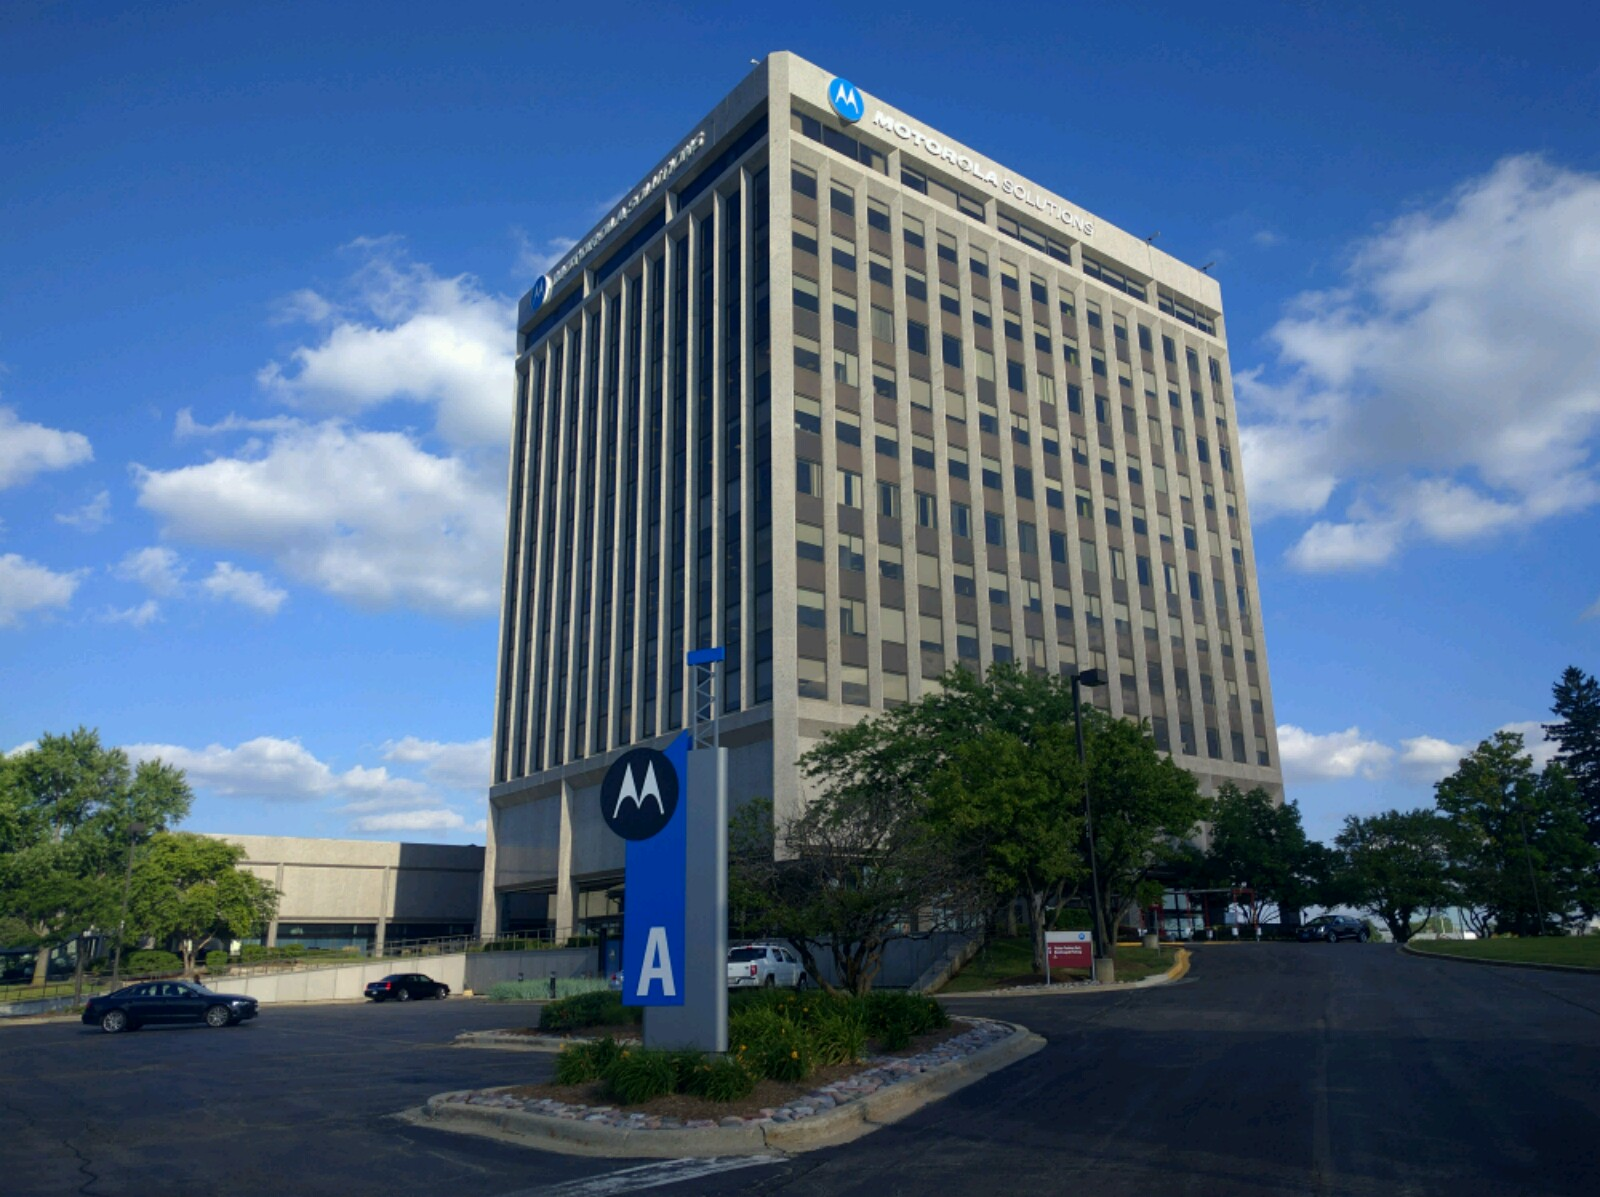 Building A on Motorola Solutions' corporate campus in Schaumburg, Illinois.